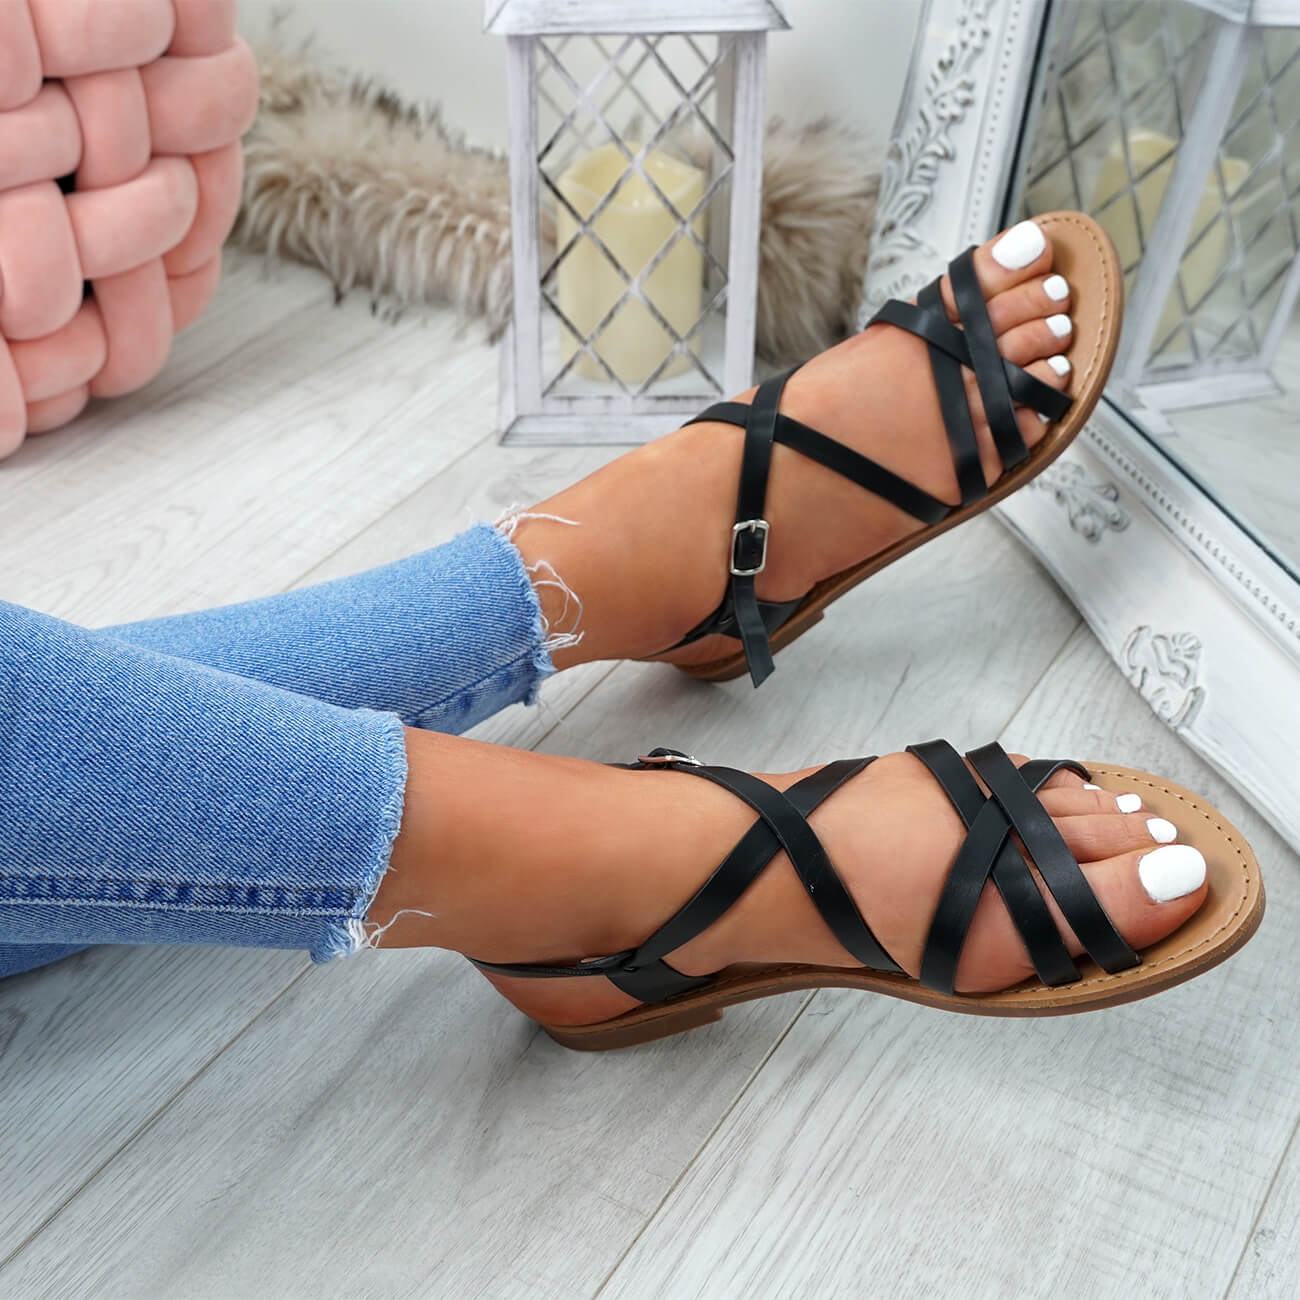 WOMENS-LADIES-ANKLE-STRAP-PEEP-TOE-BUCKLE-FLAT-SANDALS-SUMMER-CASUAL-SHOES thumbnail 10